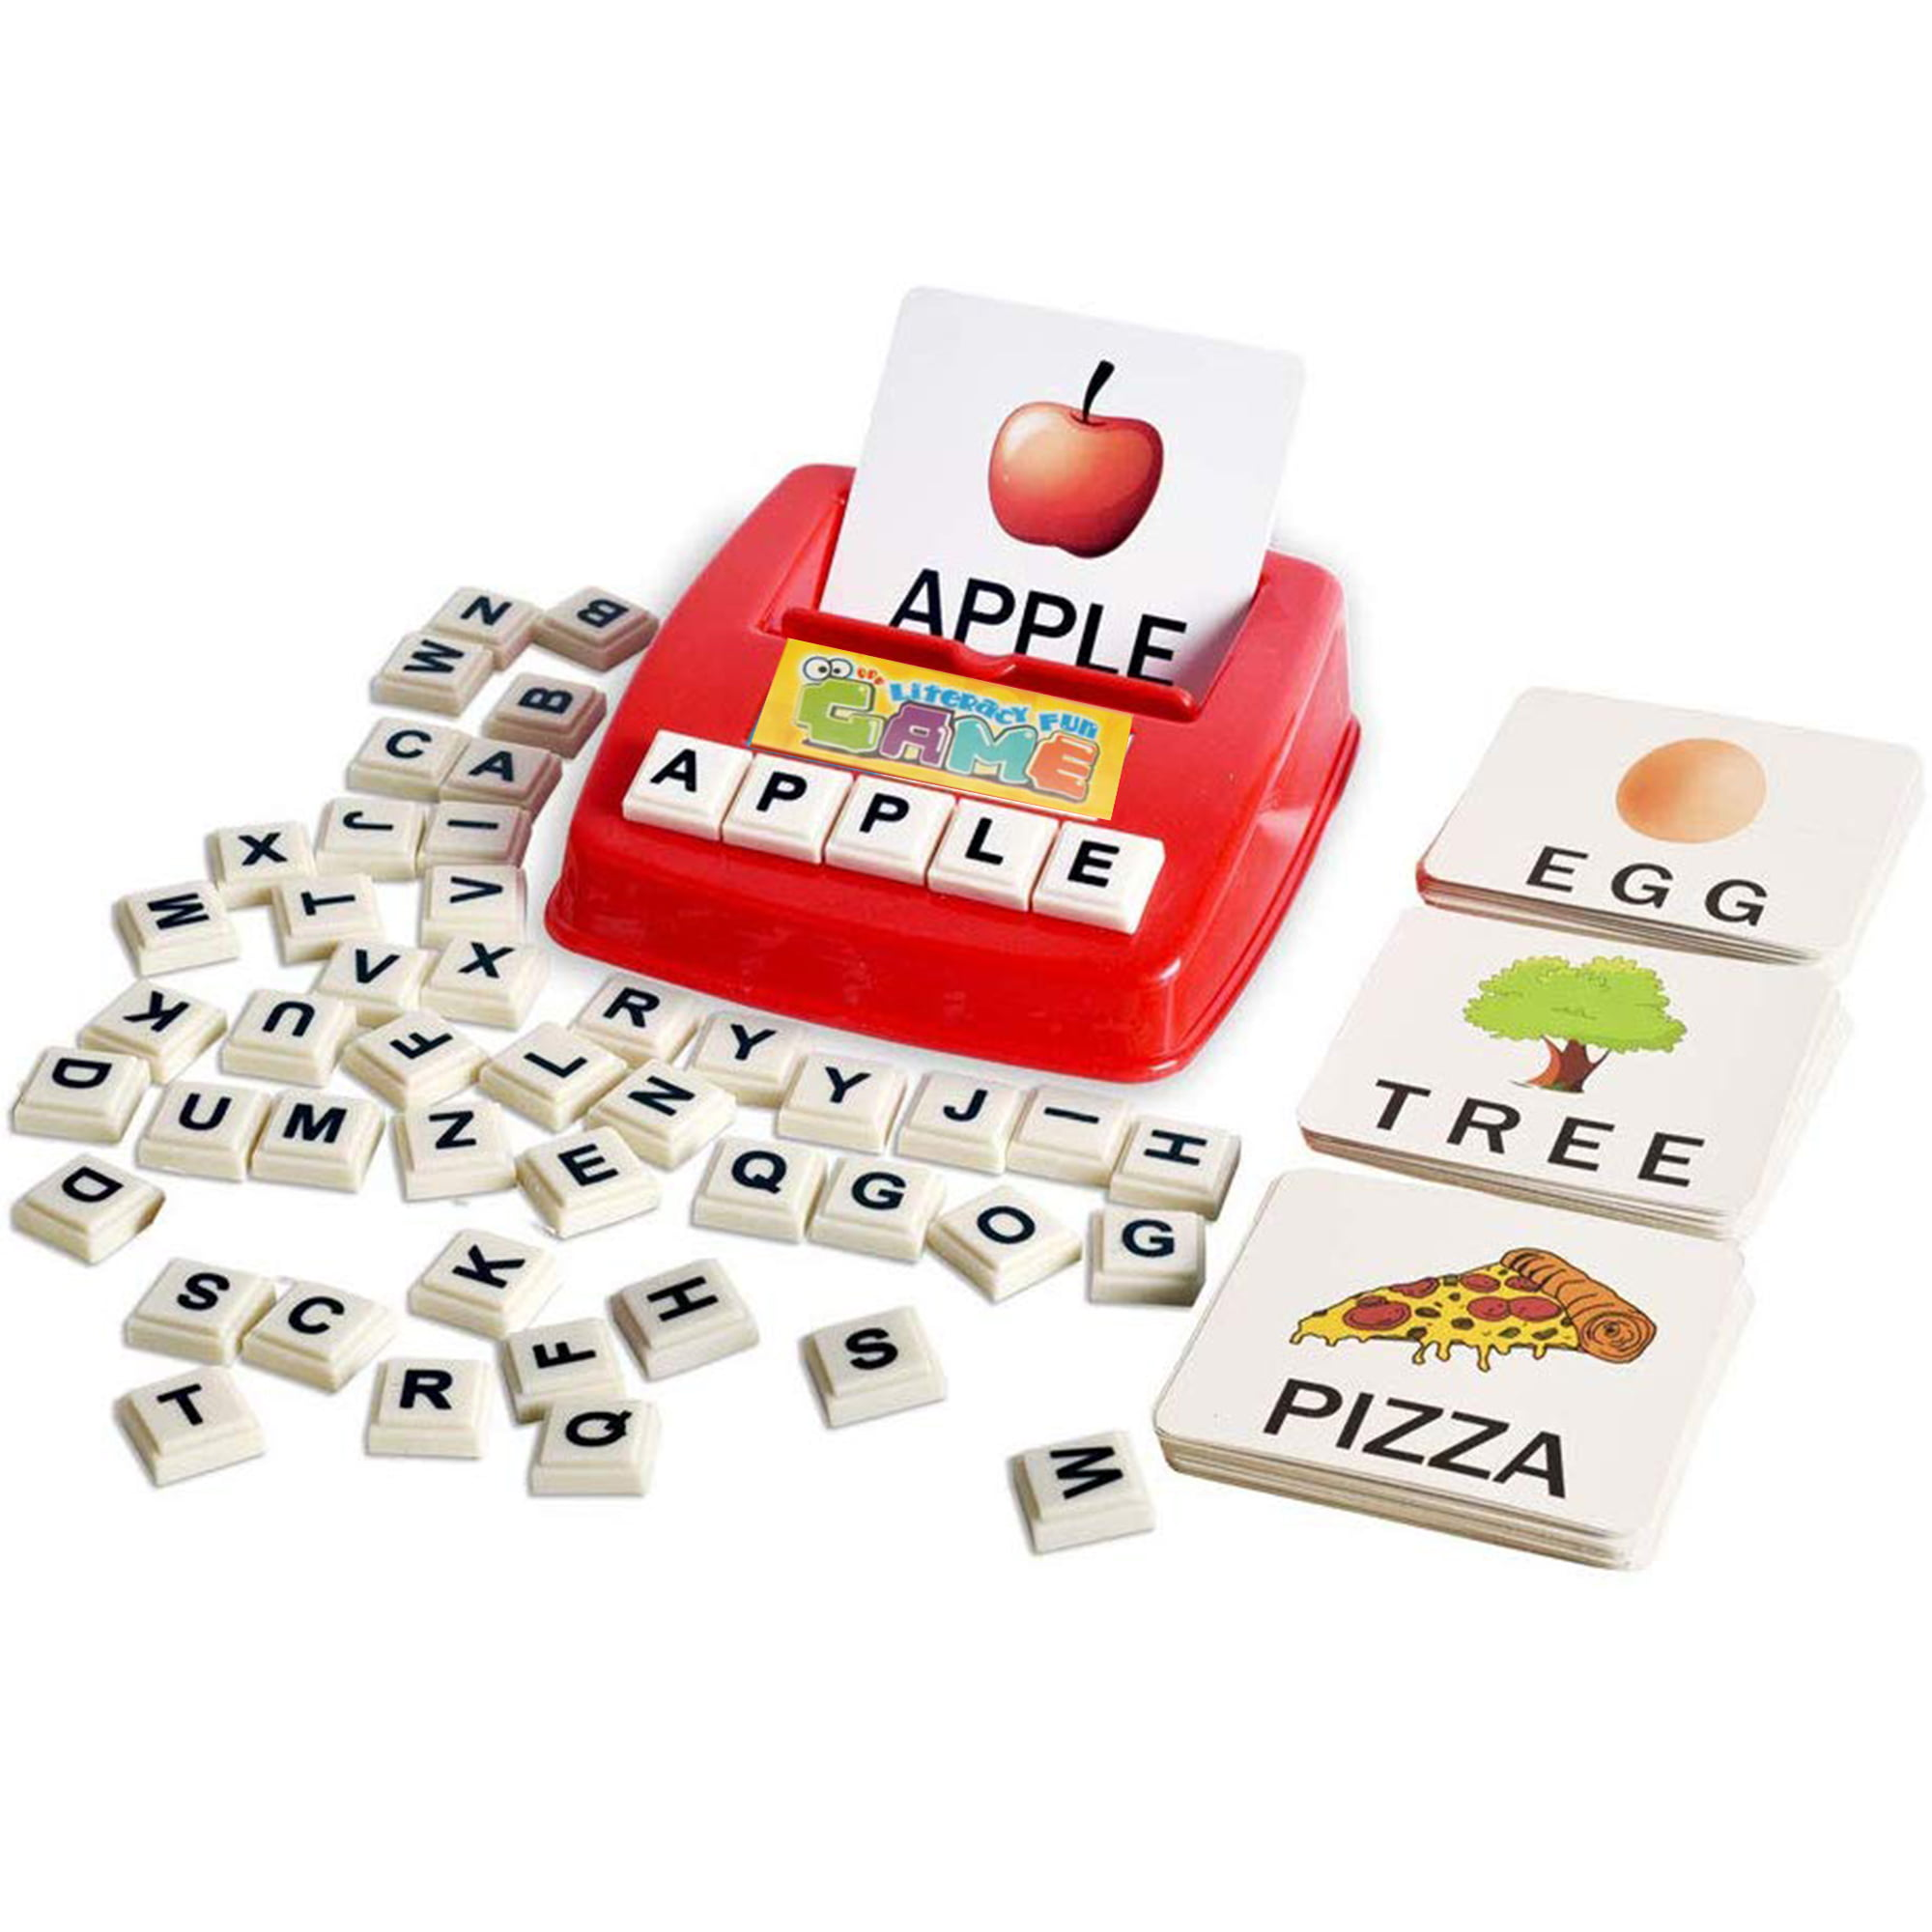 Kindergarten /& Toddlers Whoopie Matching Letter Game Best Gifts for Boys /& Girls Preschooler Letter Spelling and Reading Game for Kids Age 3-8